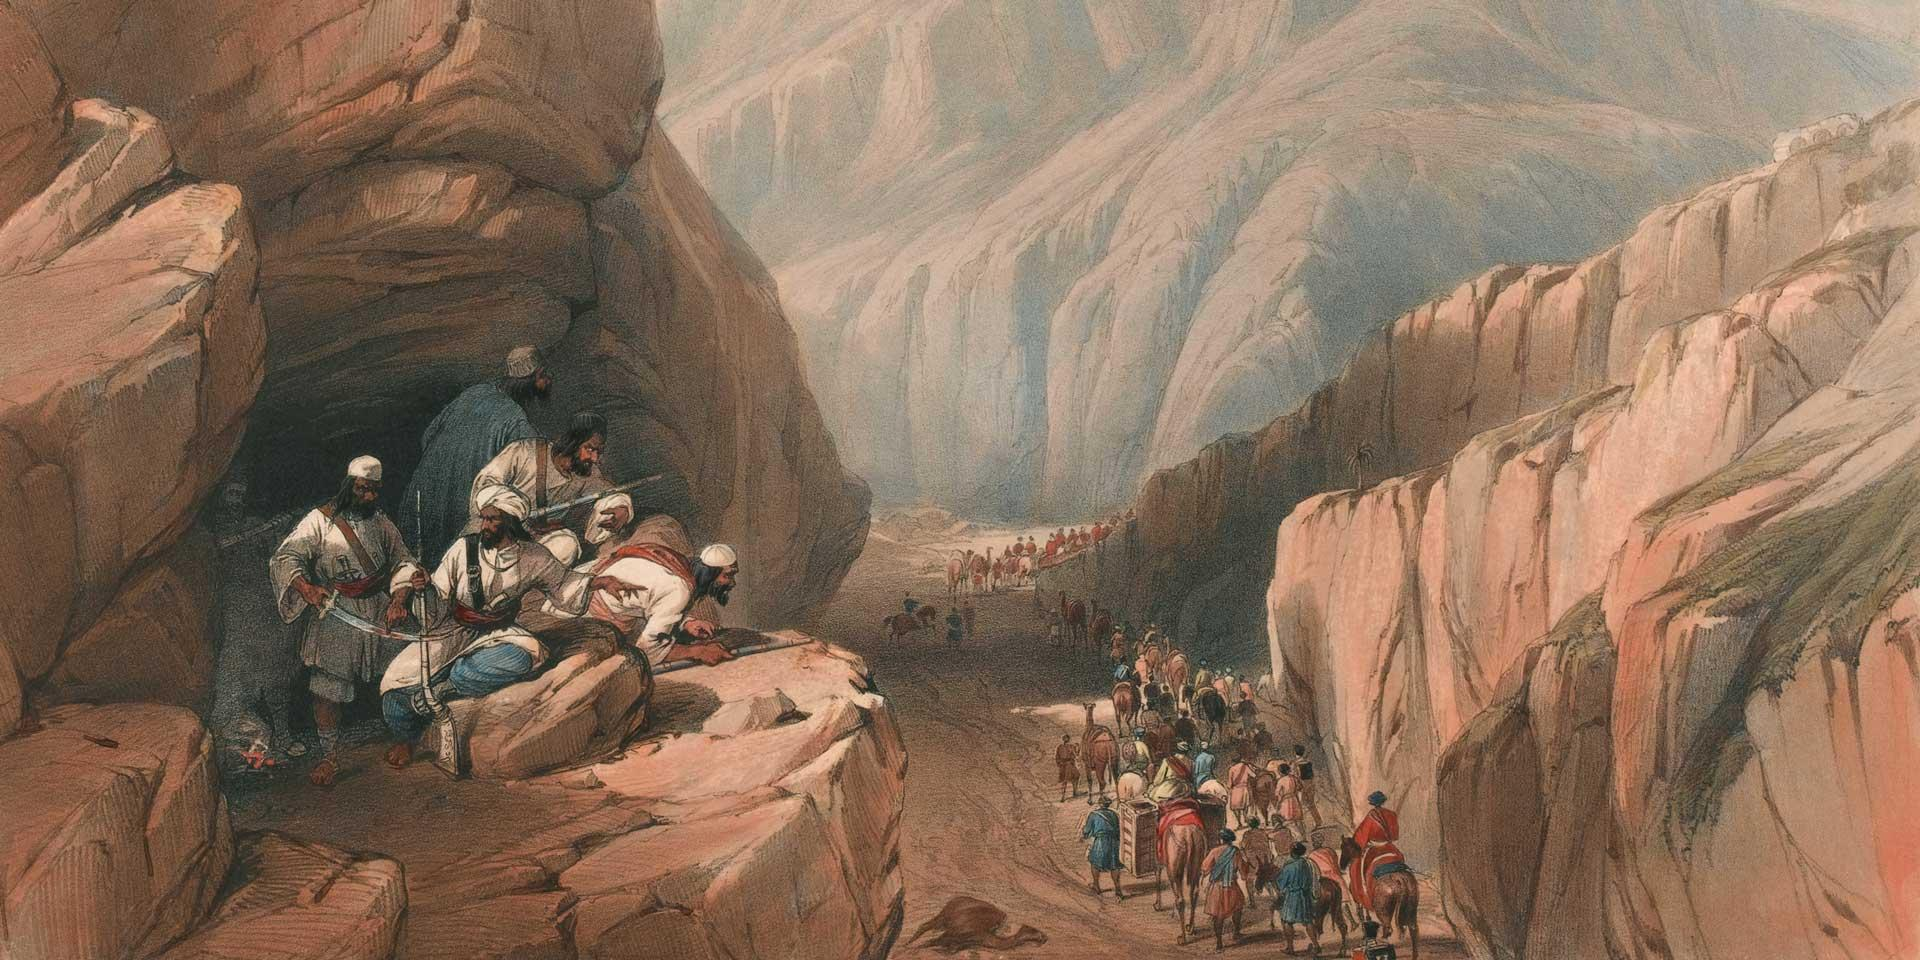 Troops from the Army of the Indus march through the Bolan Pass into Afghanistan, 1839